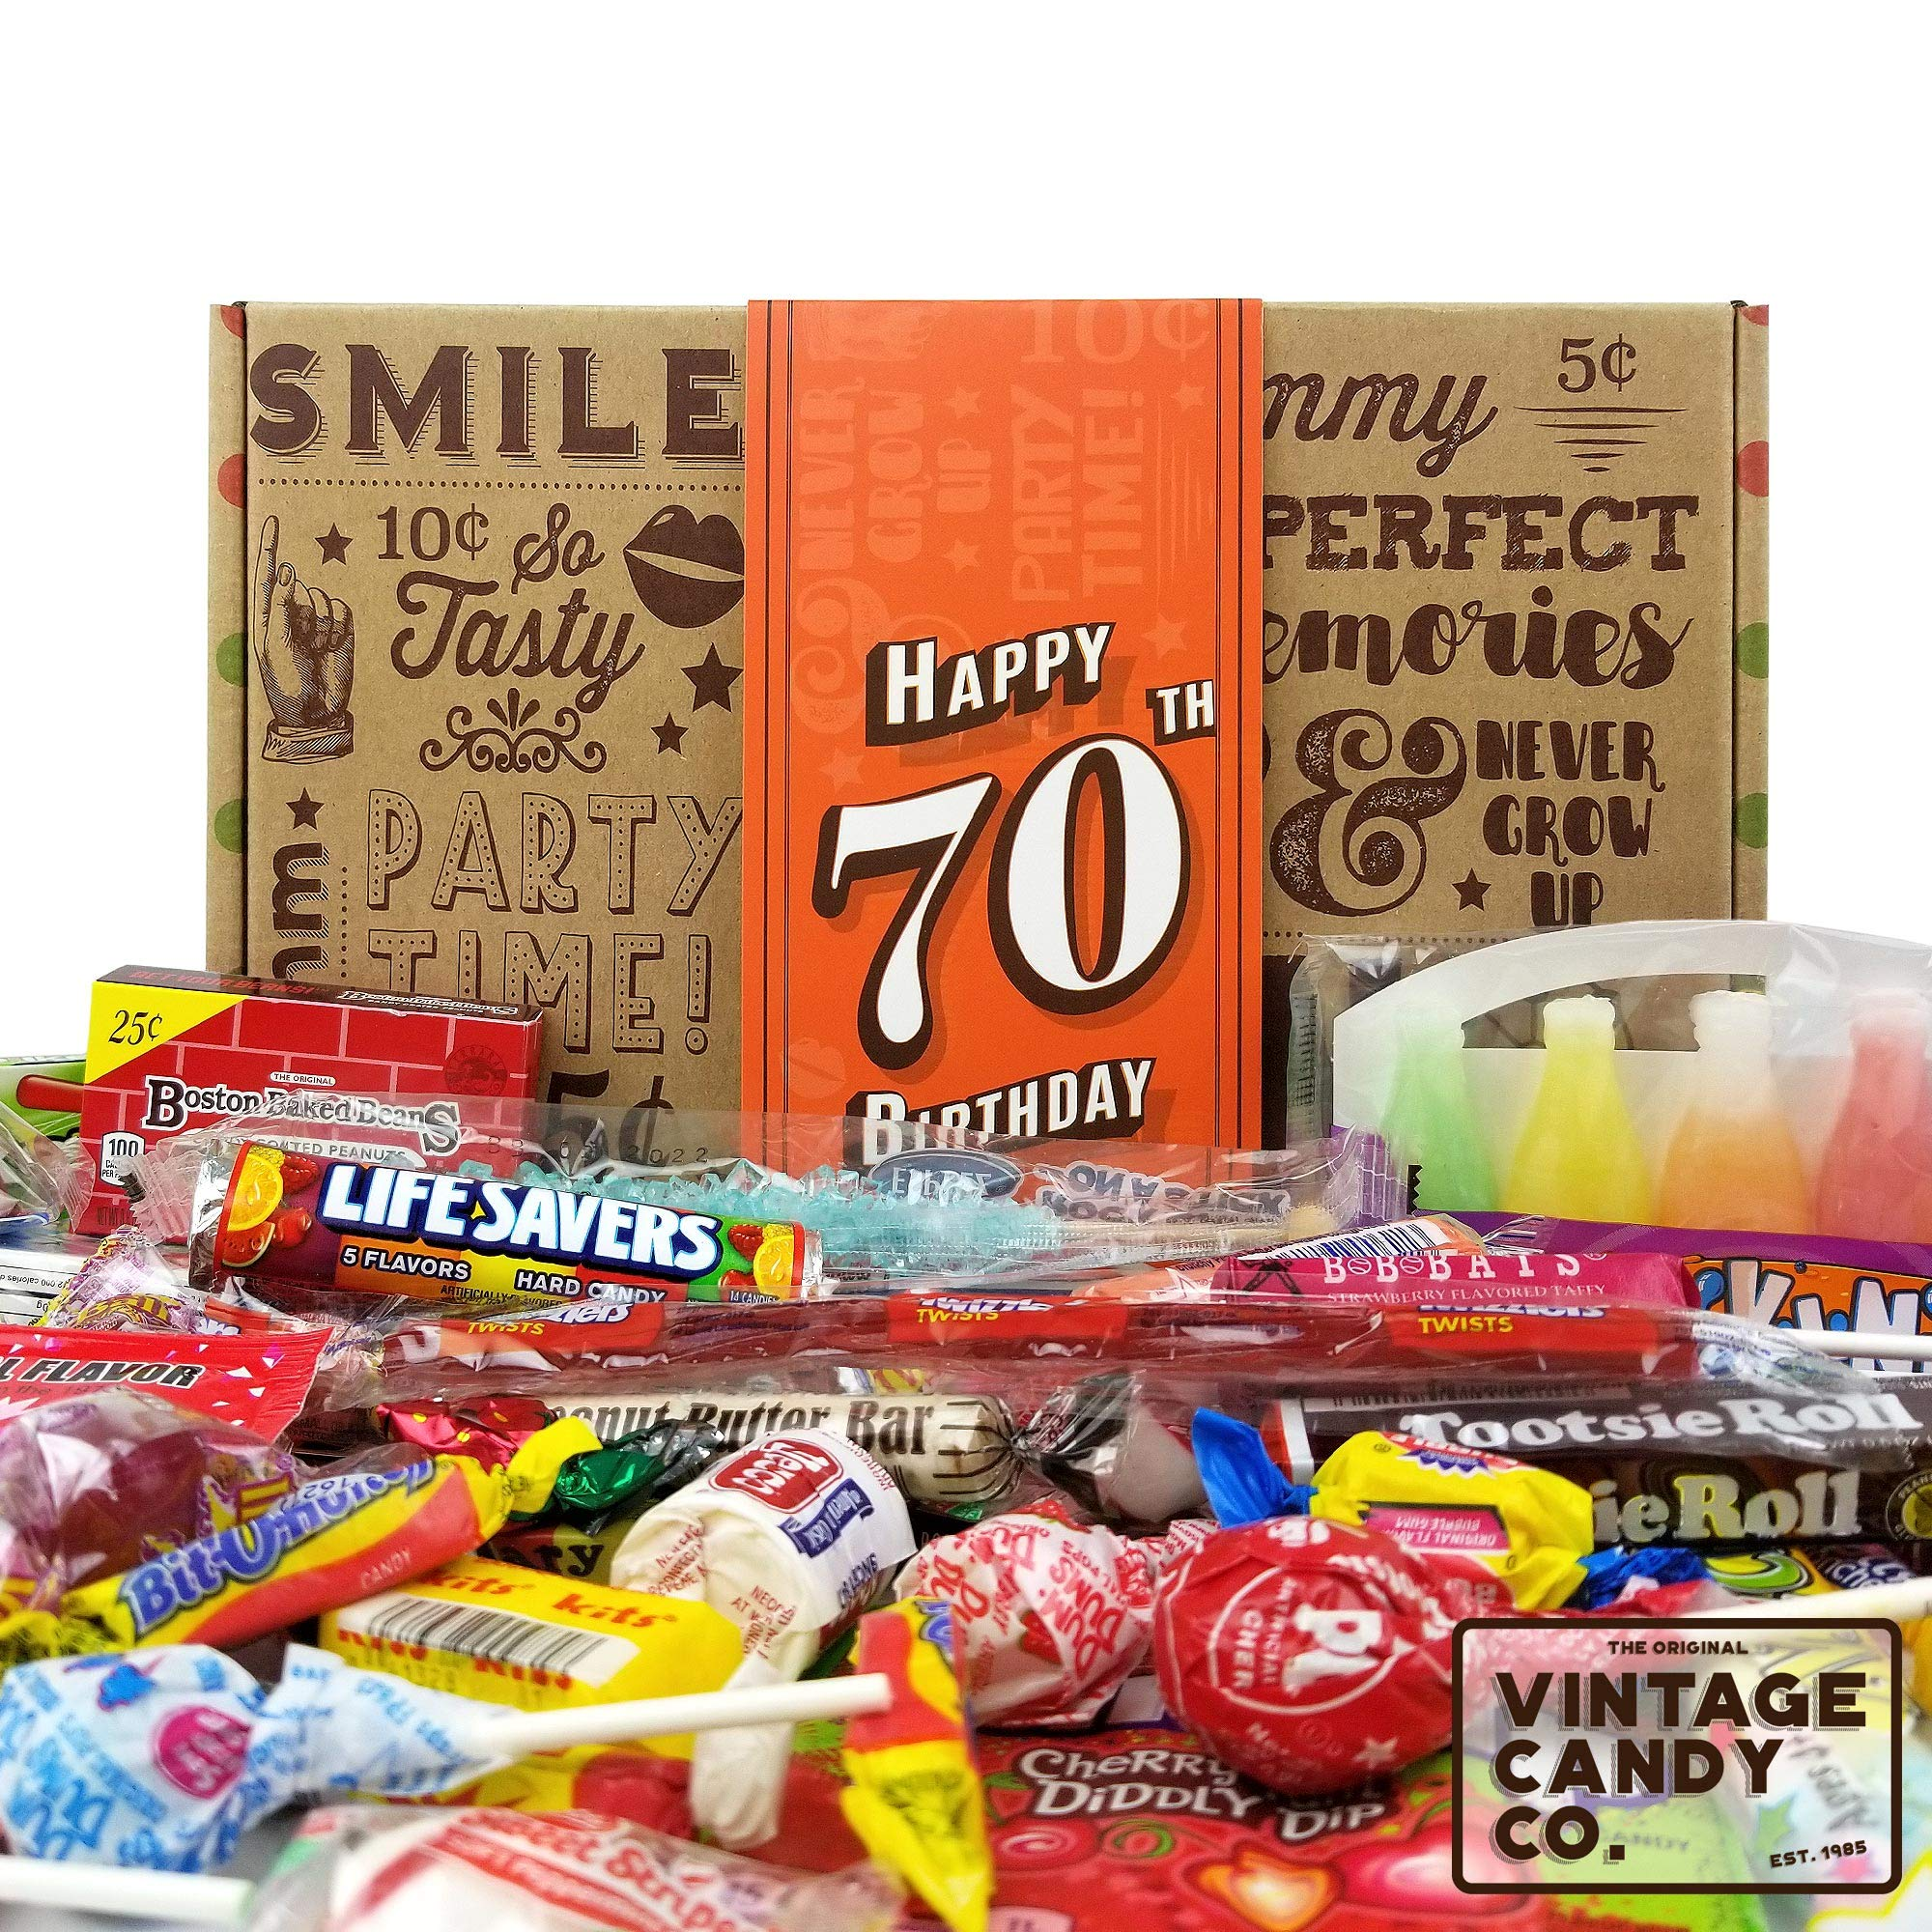 VINTAGE CANDY CO. 70TH BIRTHDAY RETRO CANDY GIFT BOX - 1949 Decade Nostalgic Childhood Candies - Fun Gag Gift Basket for Milestone SEVENTIETH Birthday - PERFECT For Man Or Woman Turning 70 Years Old by Vintage Candy Co. (Image #1)